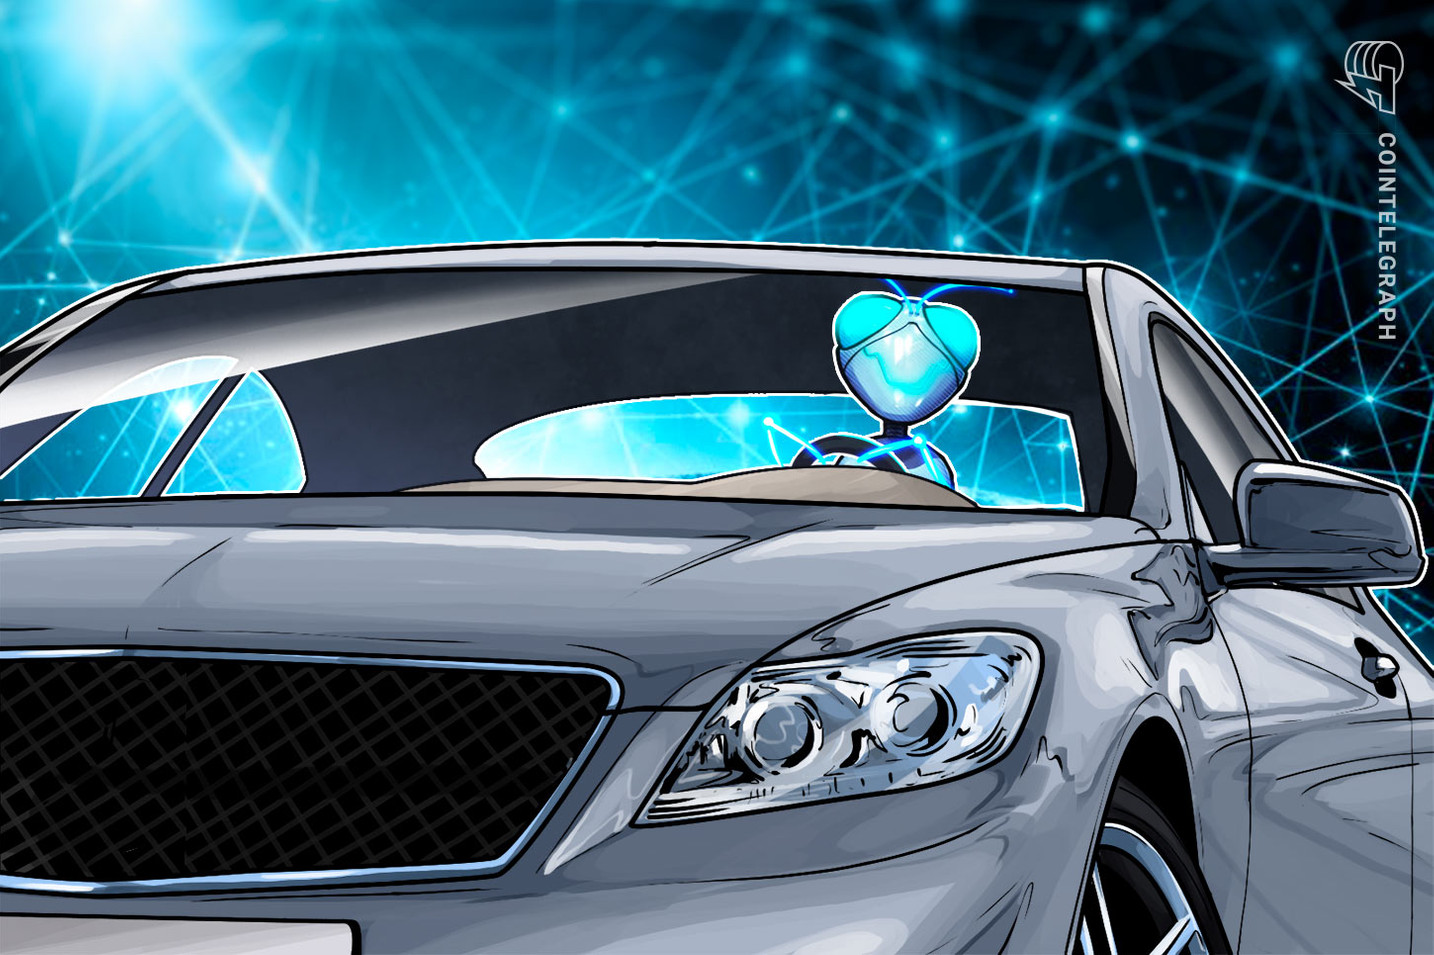 Blockchain-based EV charging trial gets $1M from Canadian government